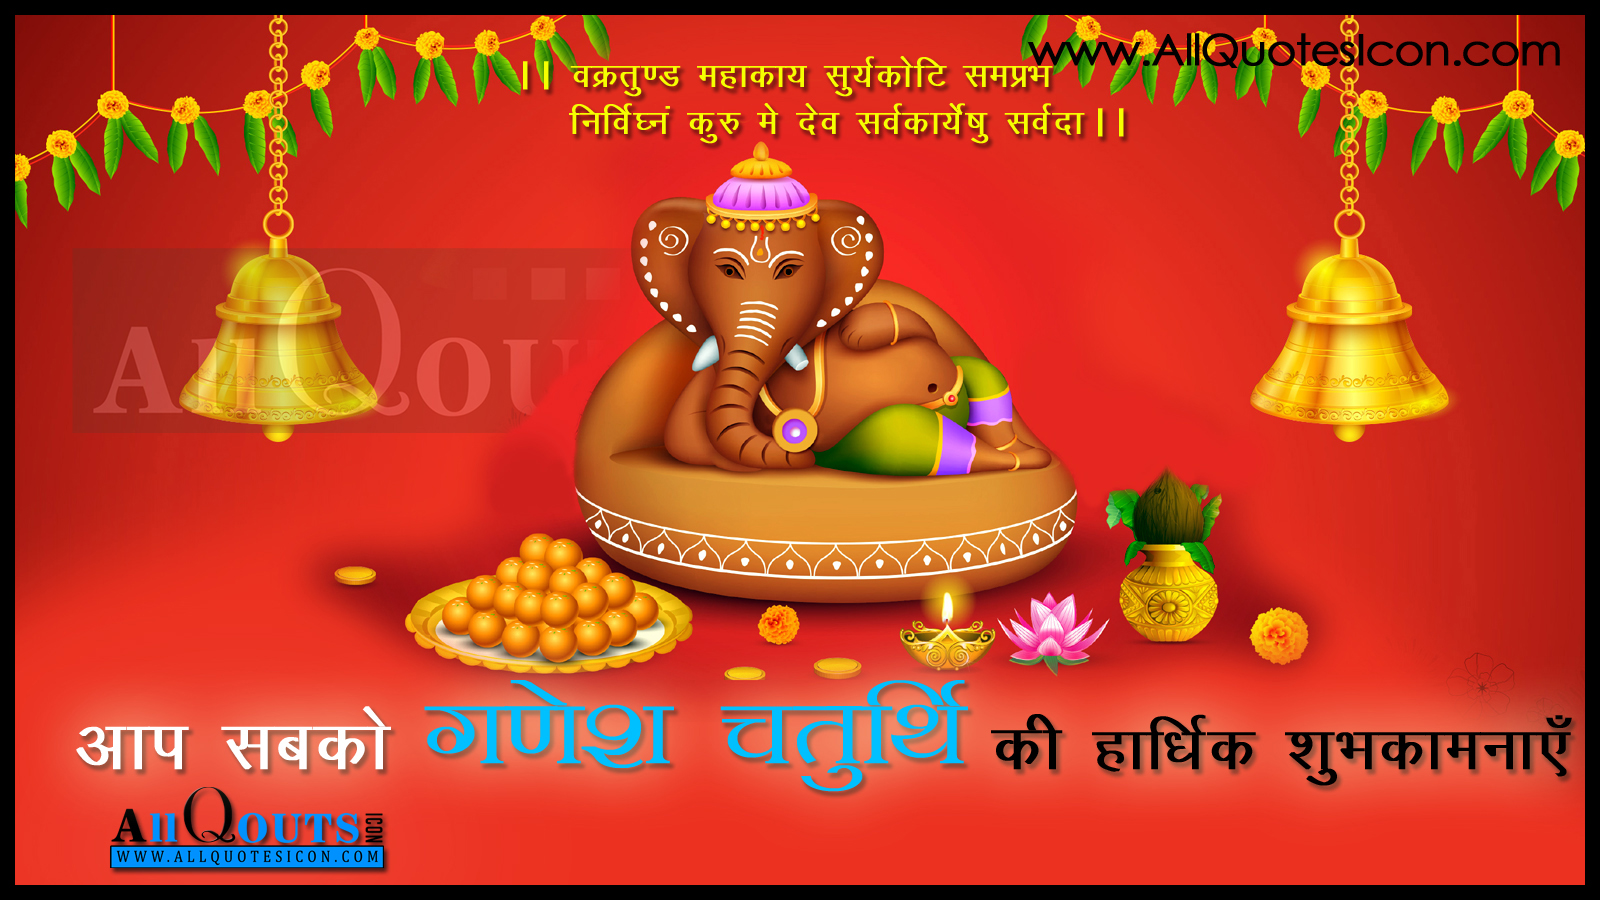 Happy Ganesh Chaturthi Hindi Quotes And Awesome Hd Wallpapers With